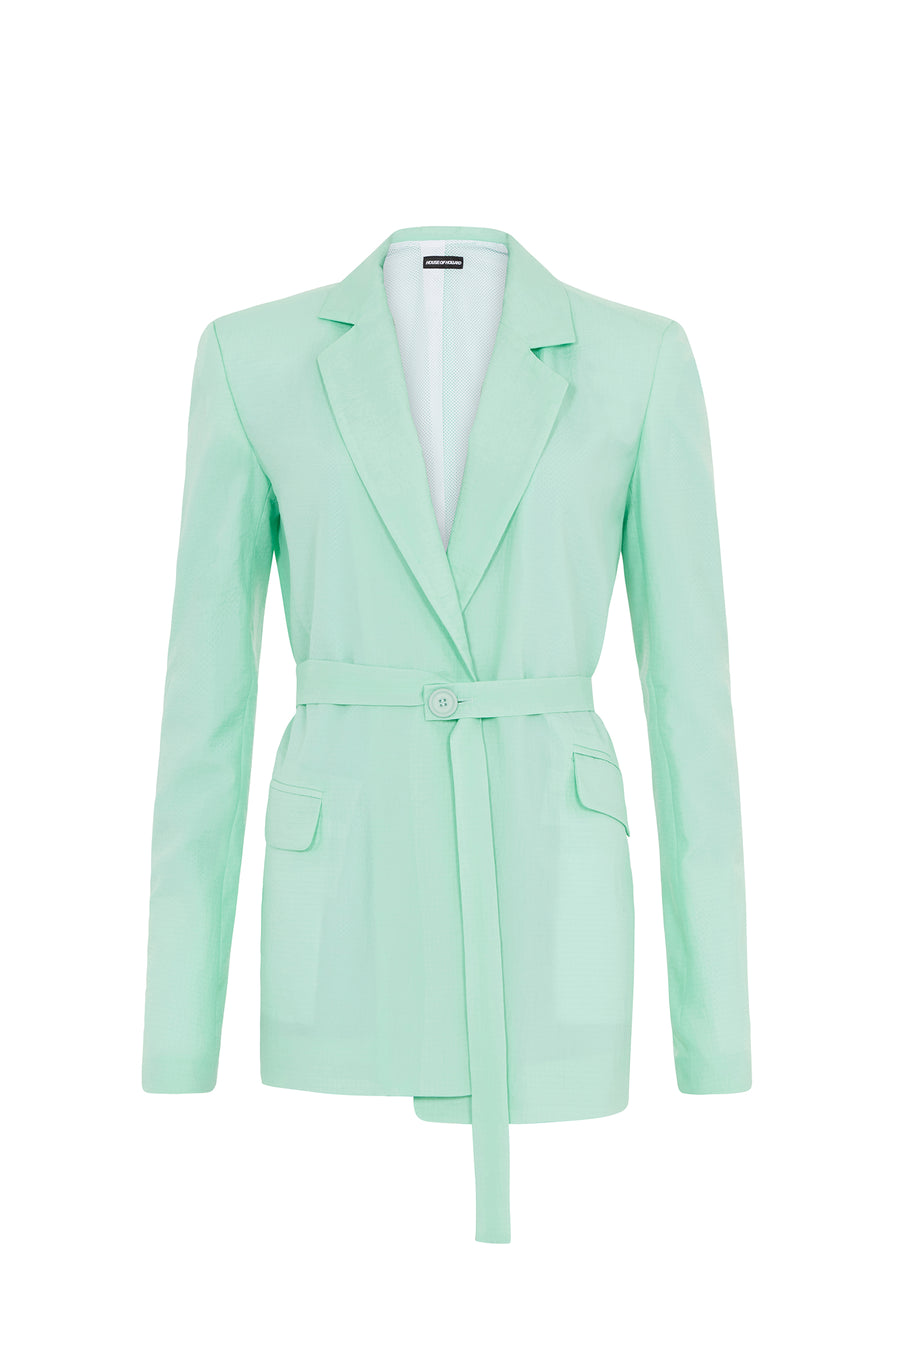 Ripstop Tailored Jacket (Mint Green) by House of Holland